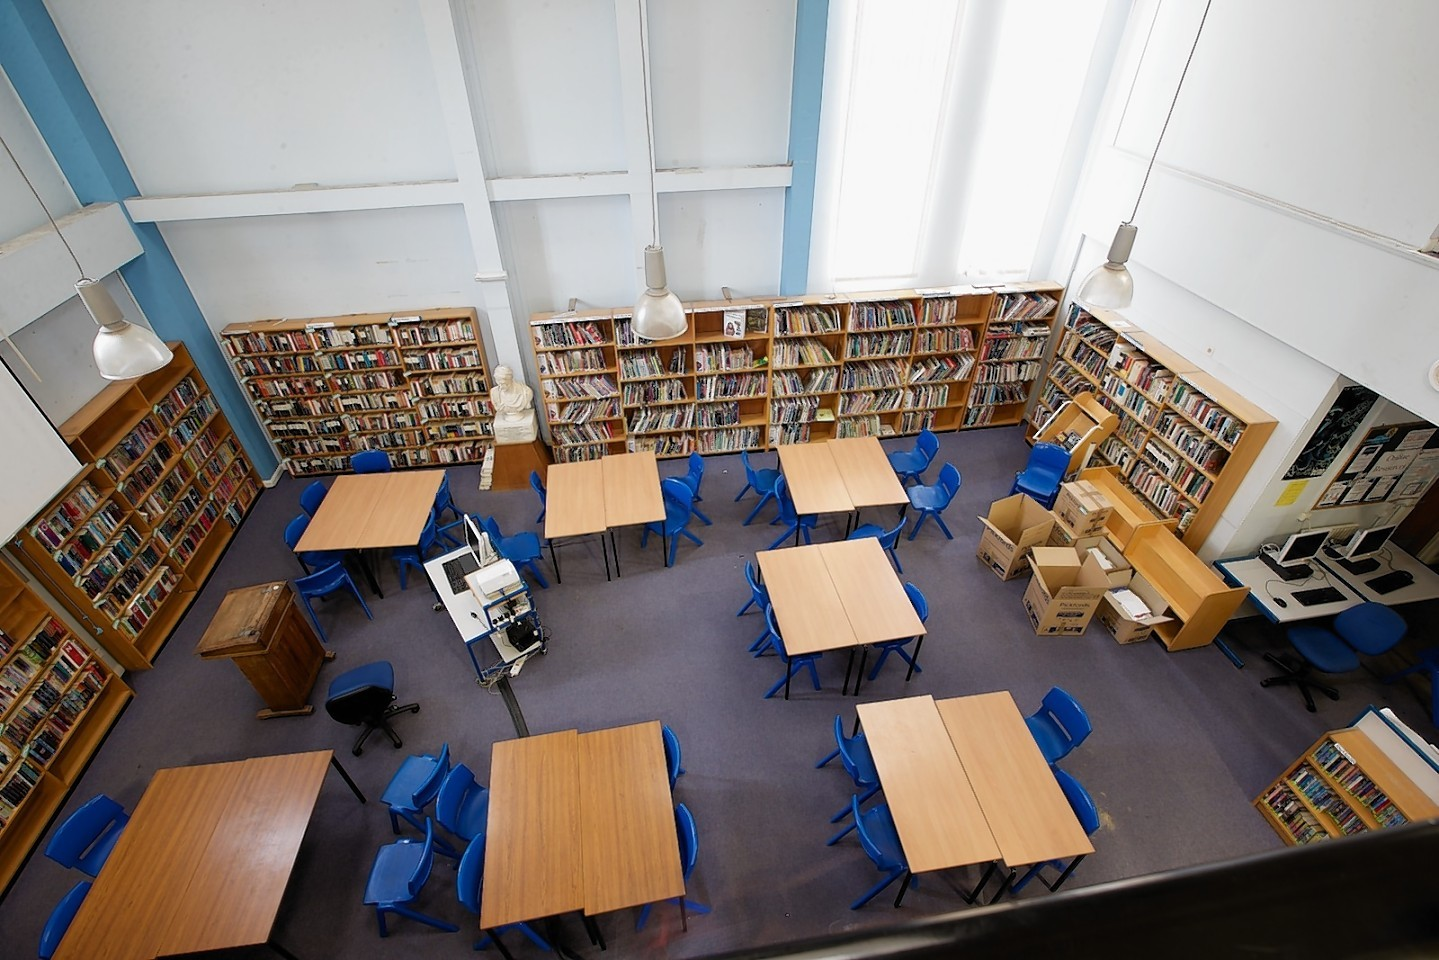 Inverness Royal Academy library 1977-2016